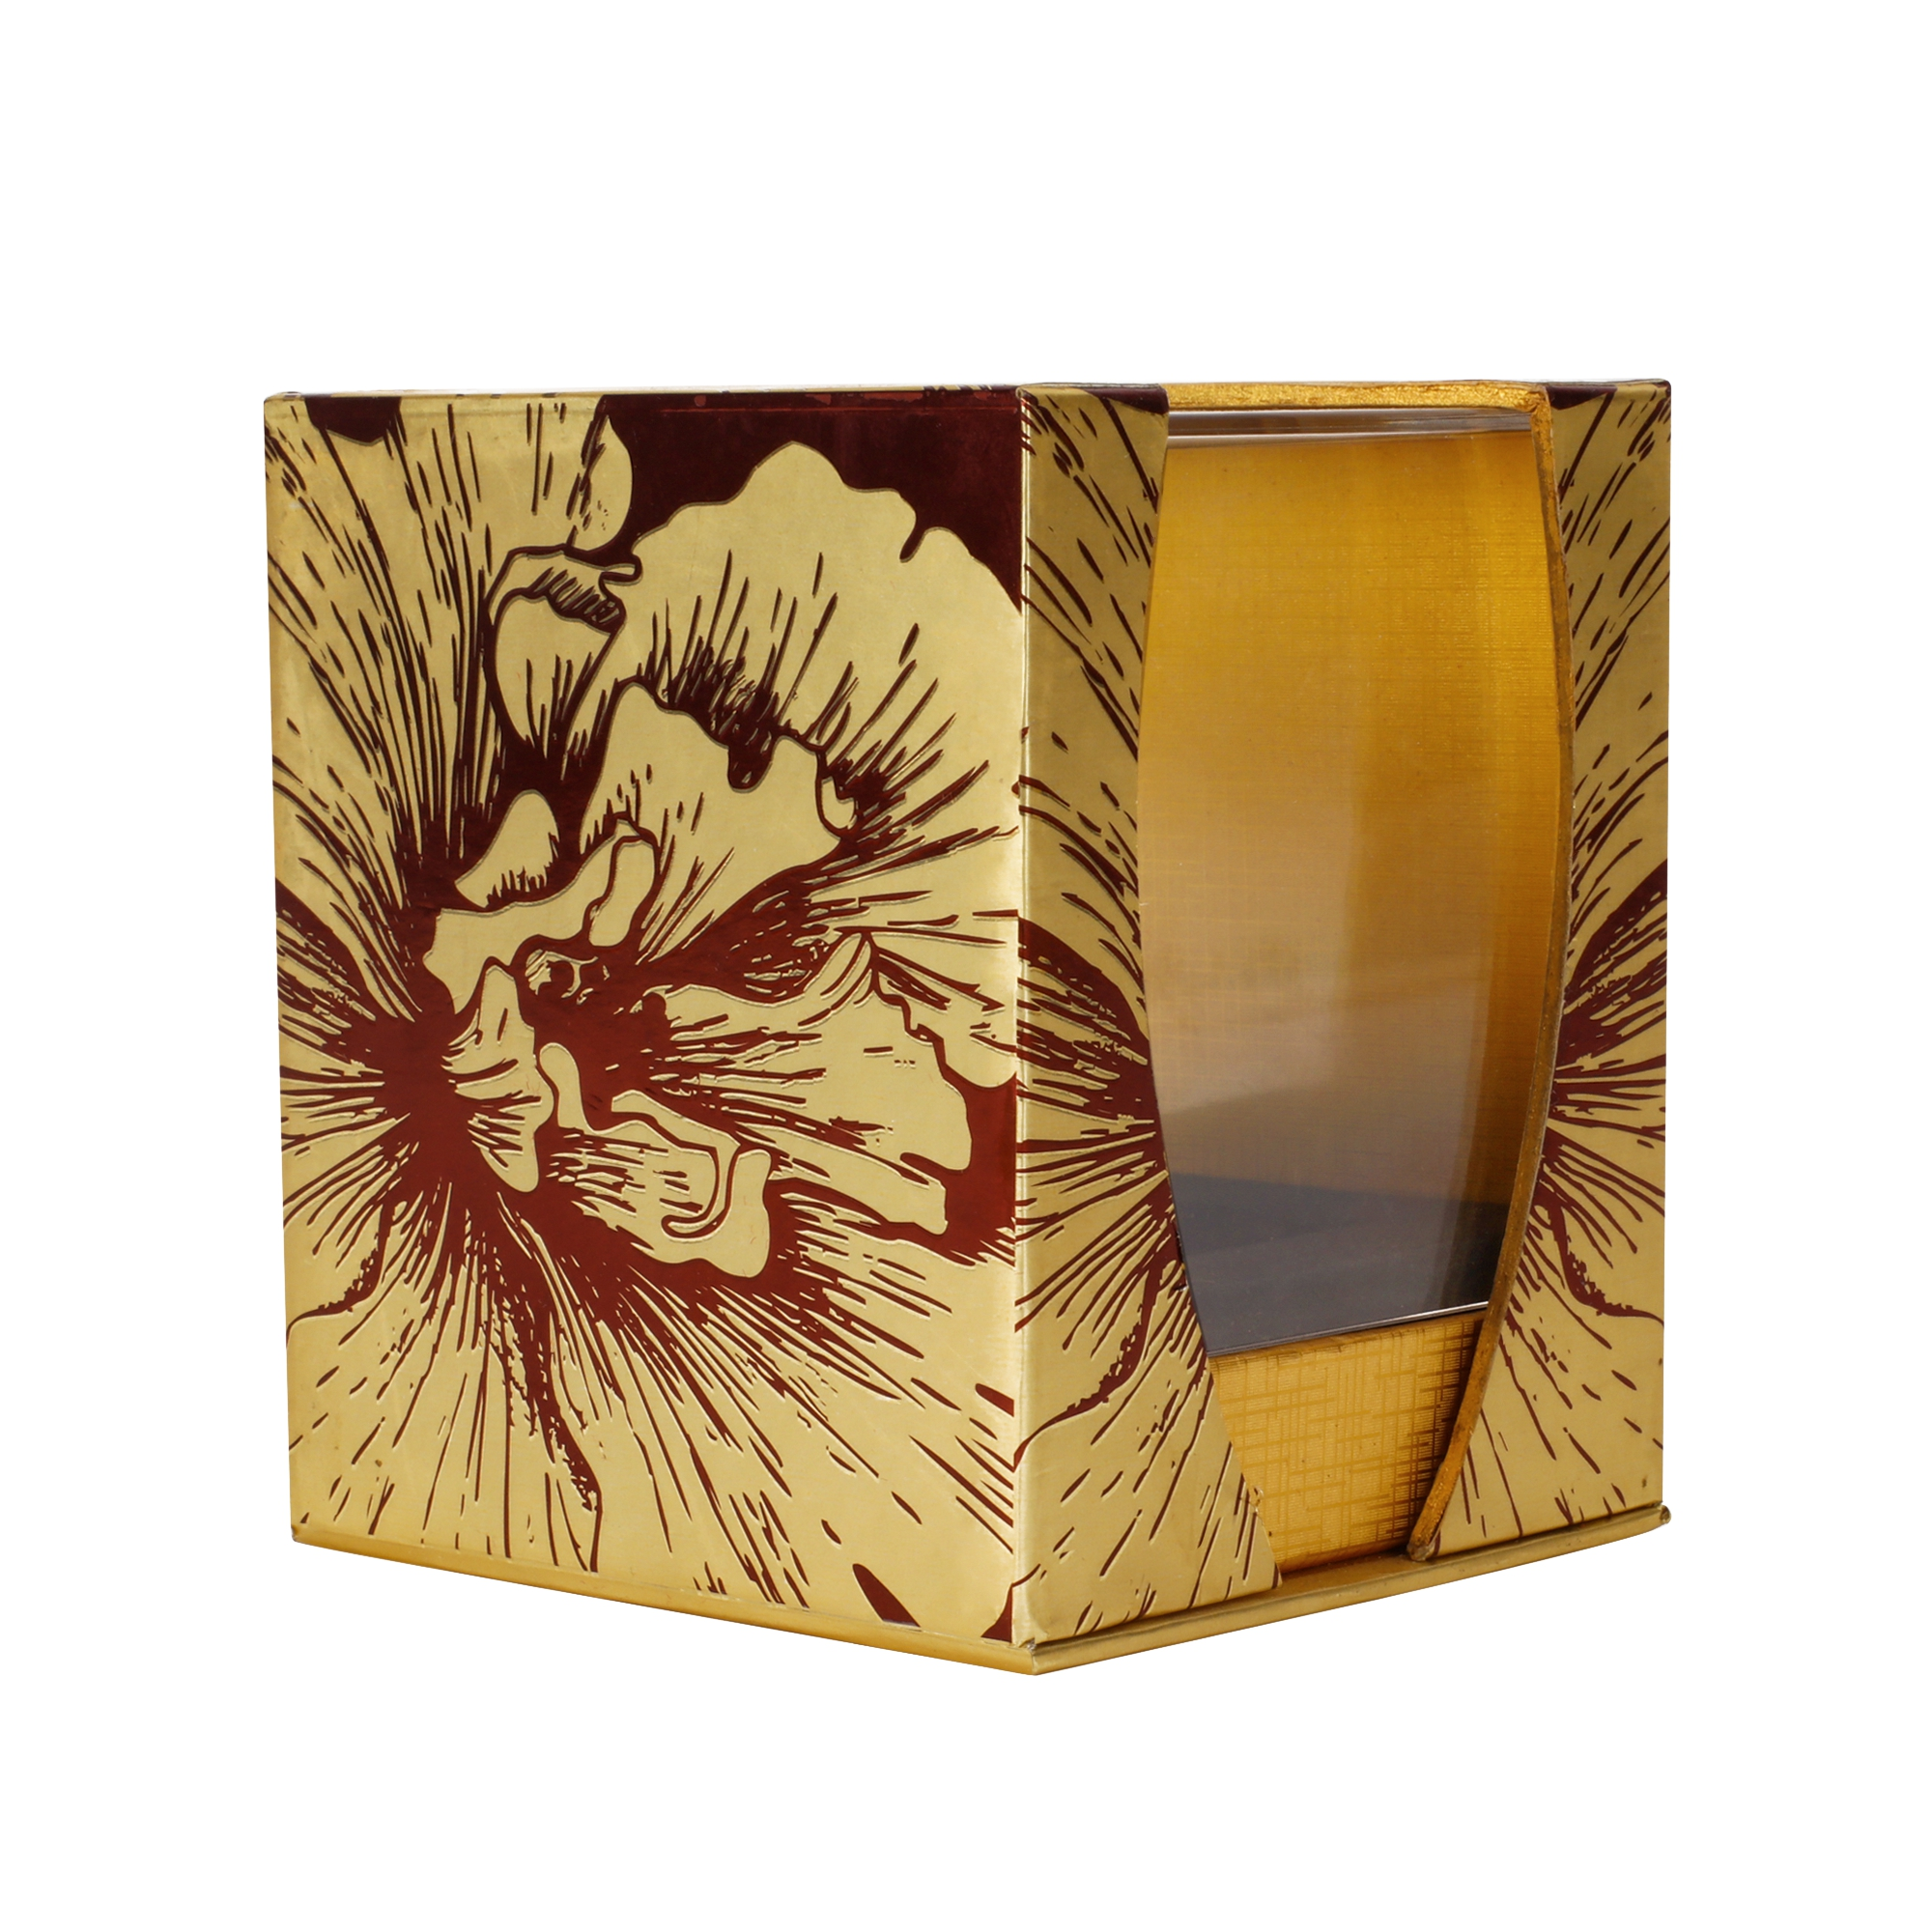 Exquisite Handmade Golden Cardboard Gift Packaging Box With Acrylic Cover For Perfume None